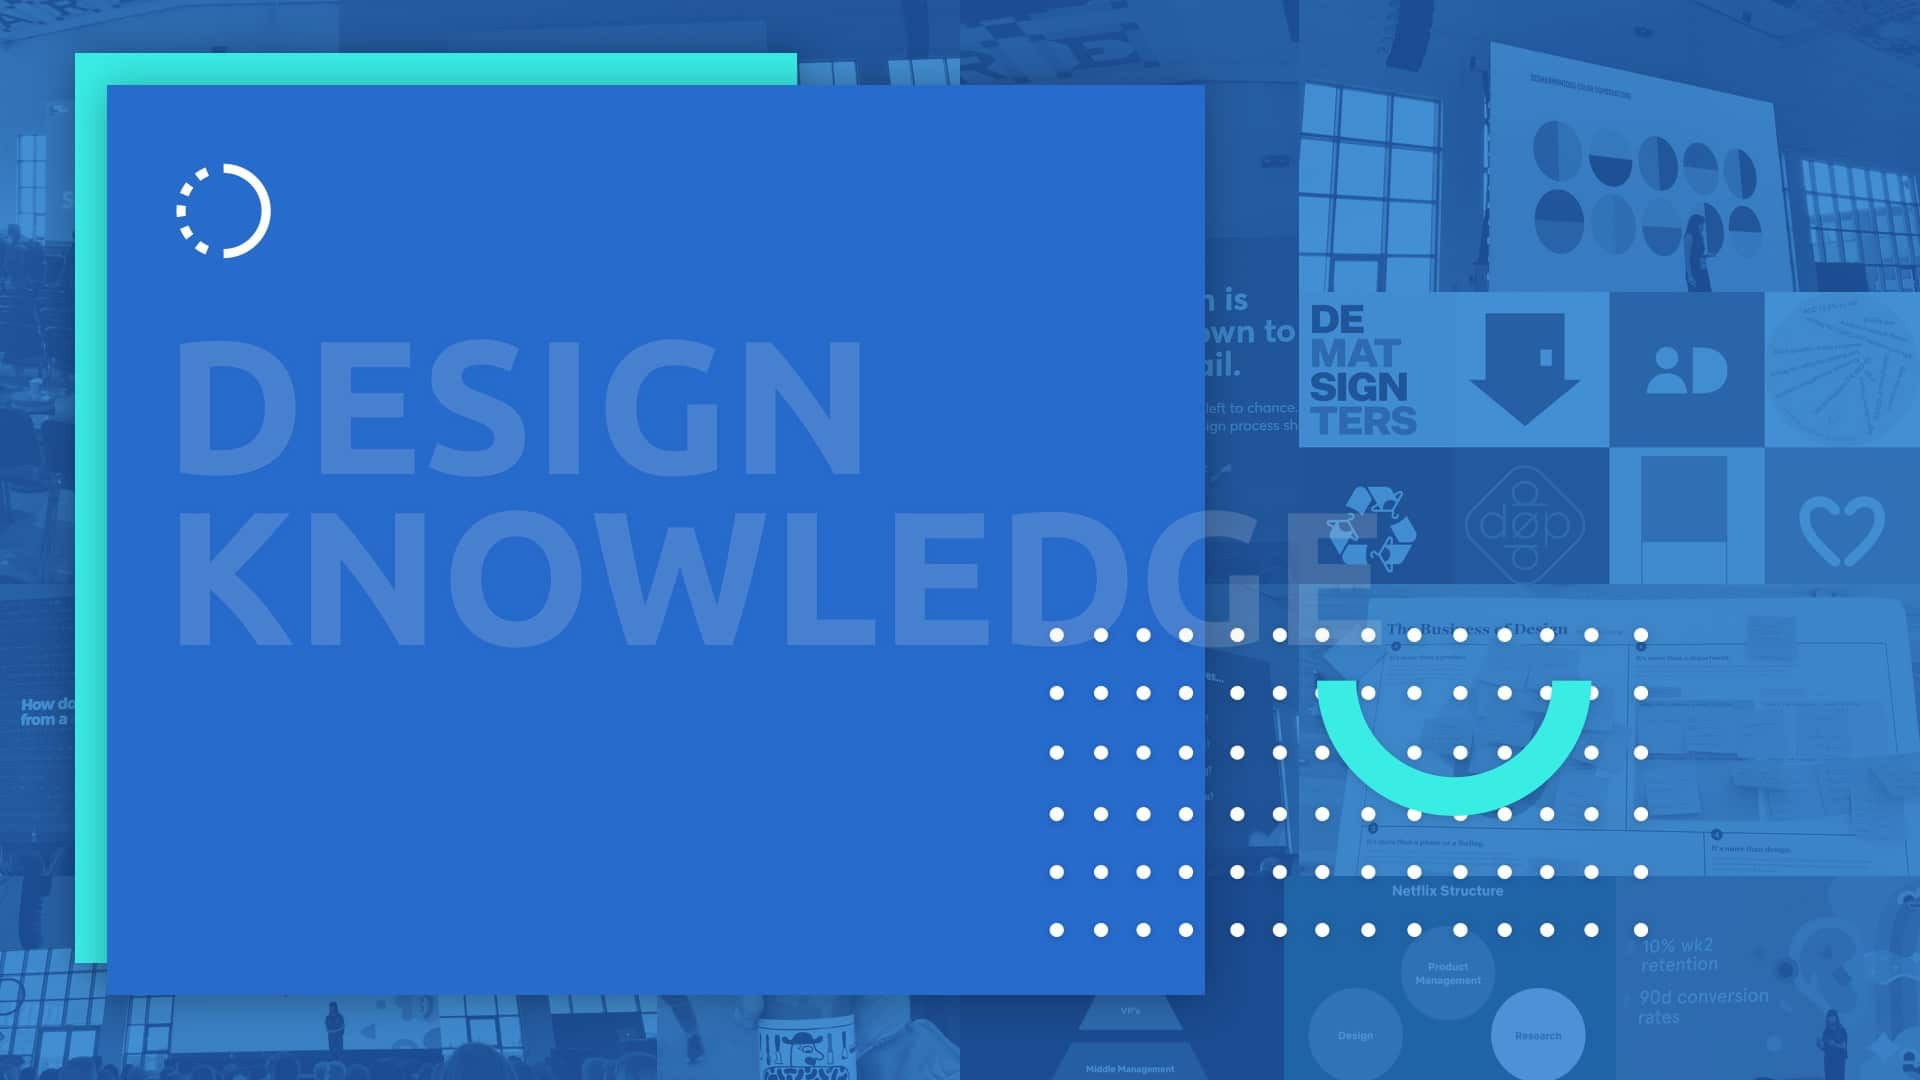 Design Knowledge - The World's Best Software Designers - Inspirations   MobiLab